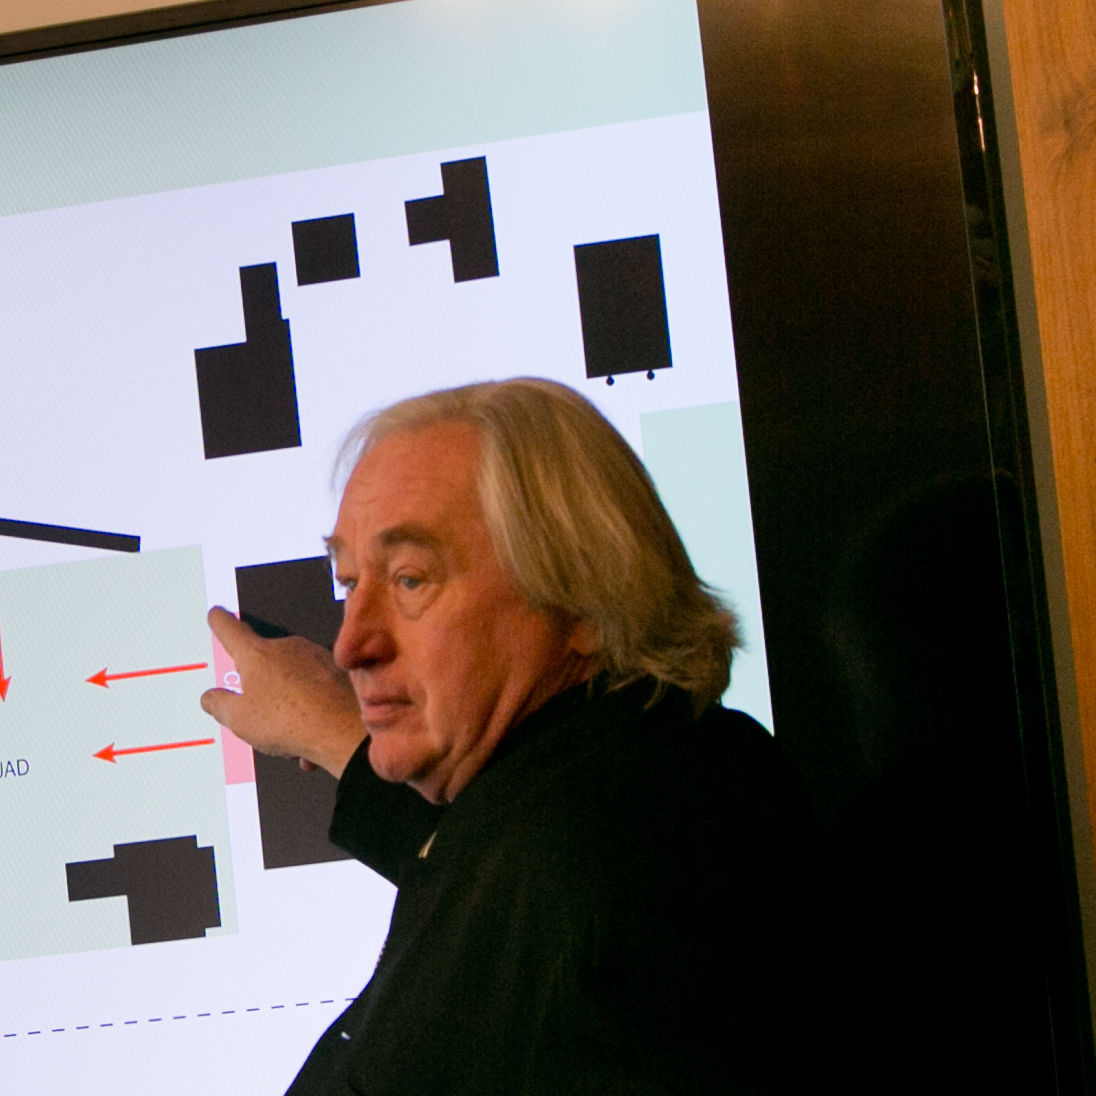 Architect Steven Holl